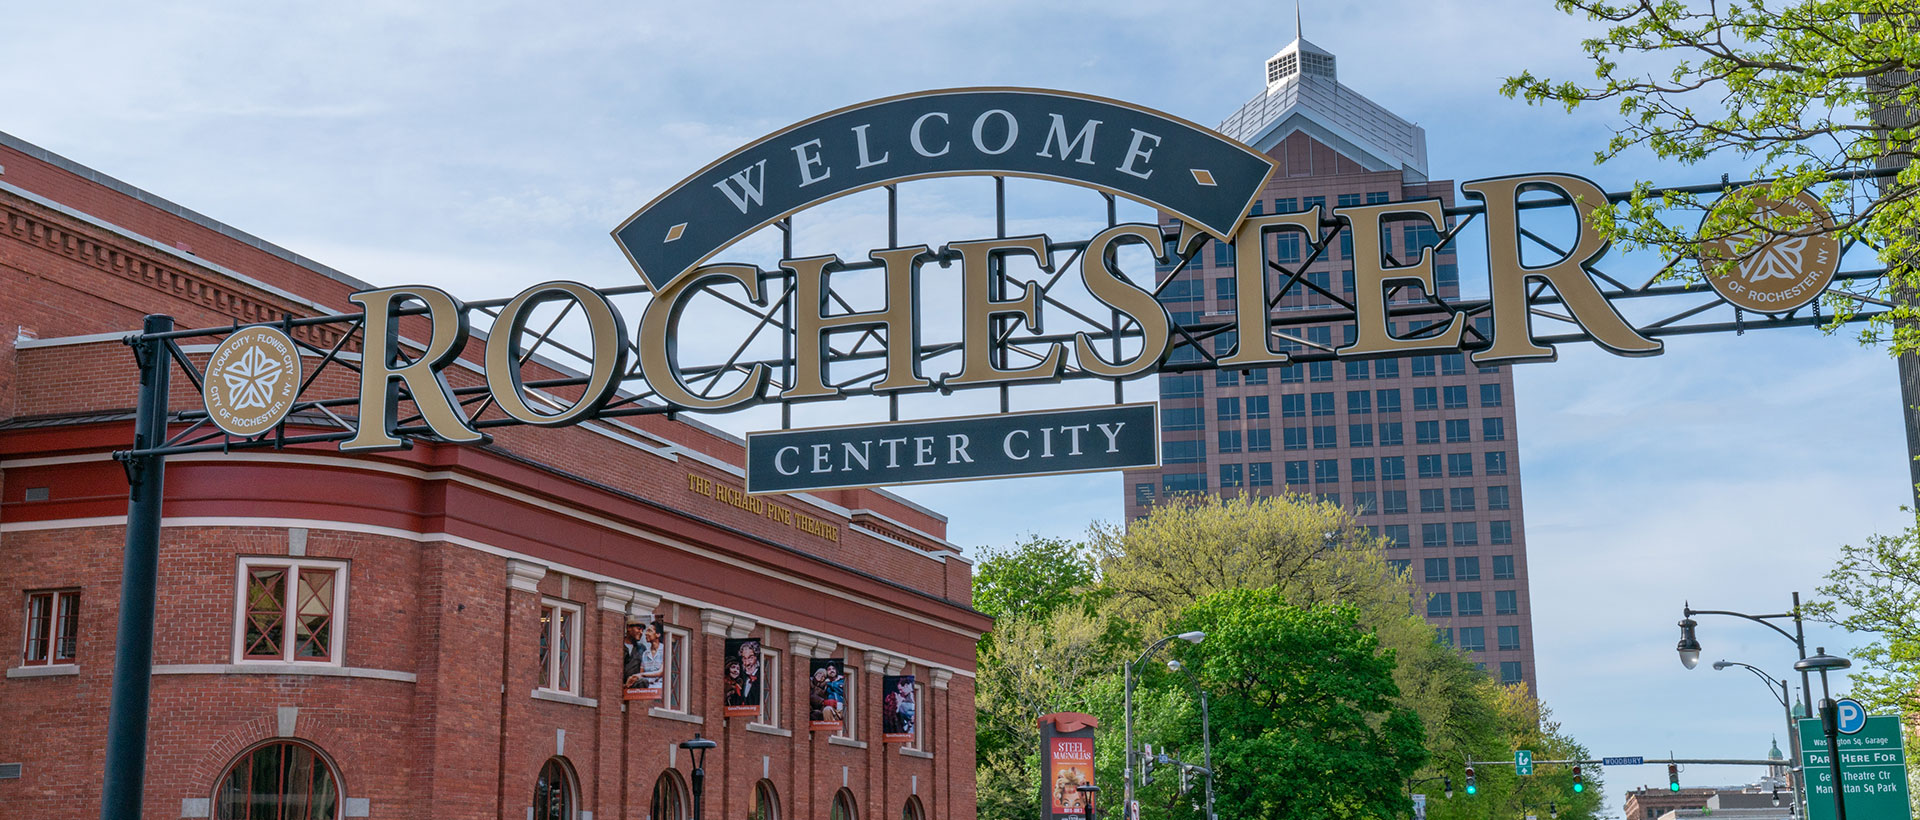 Welcome to Rochester Center City sign